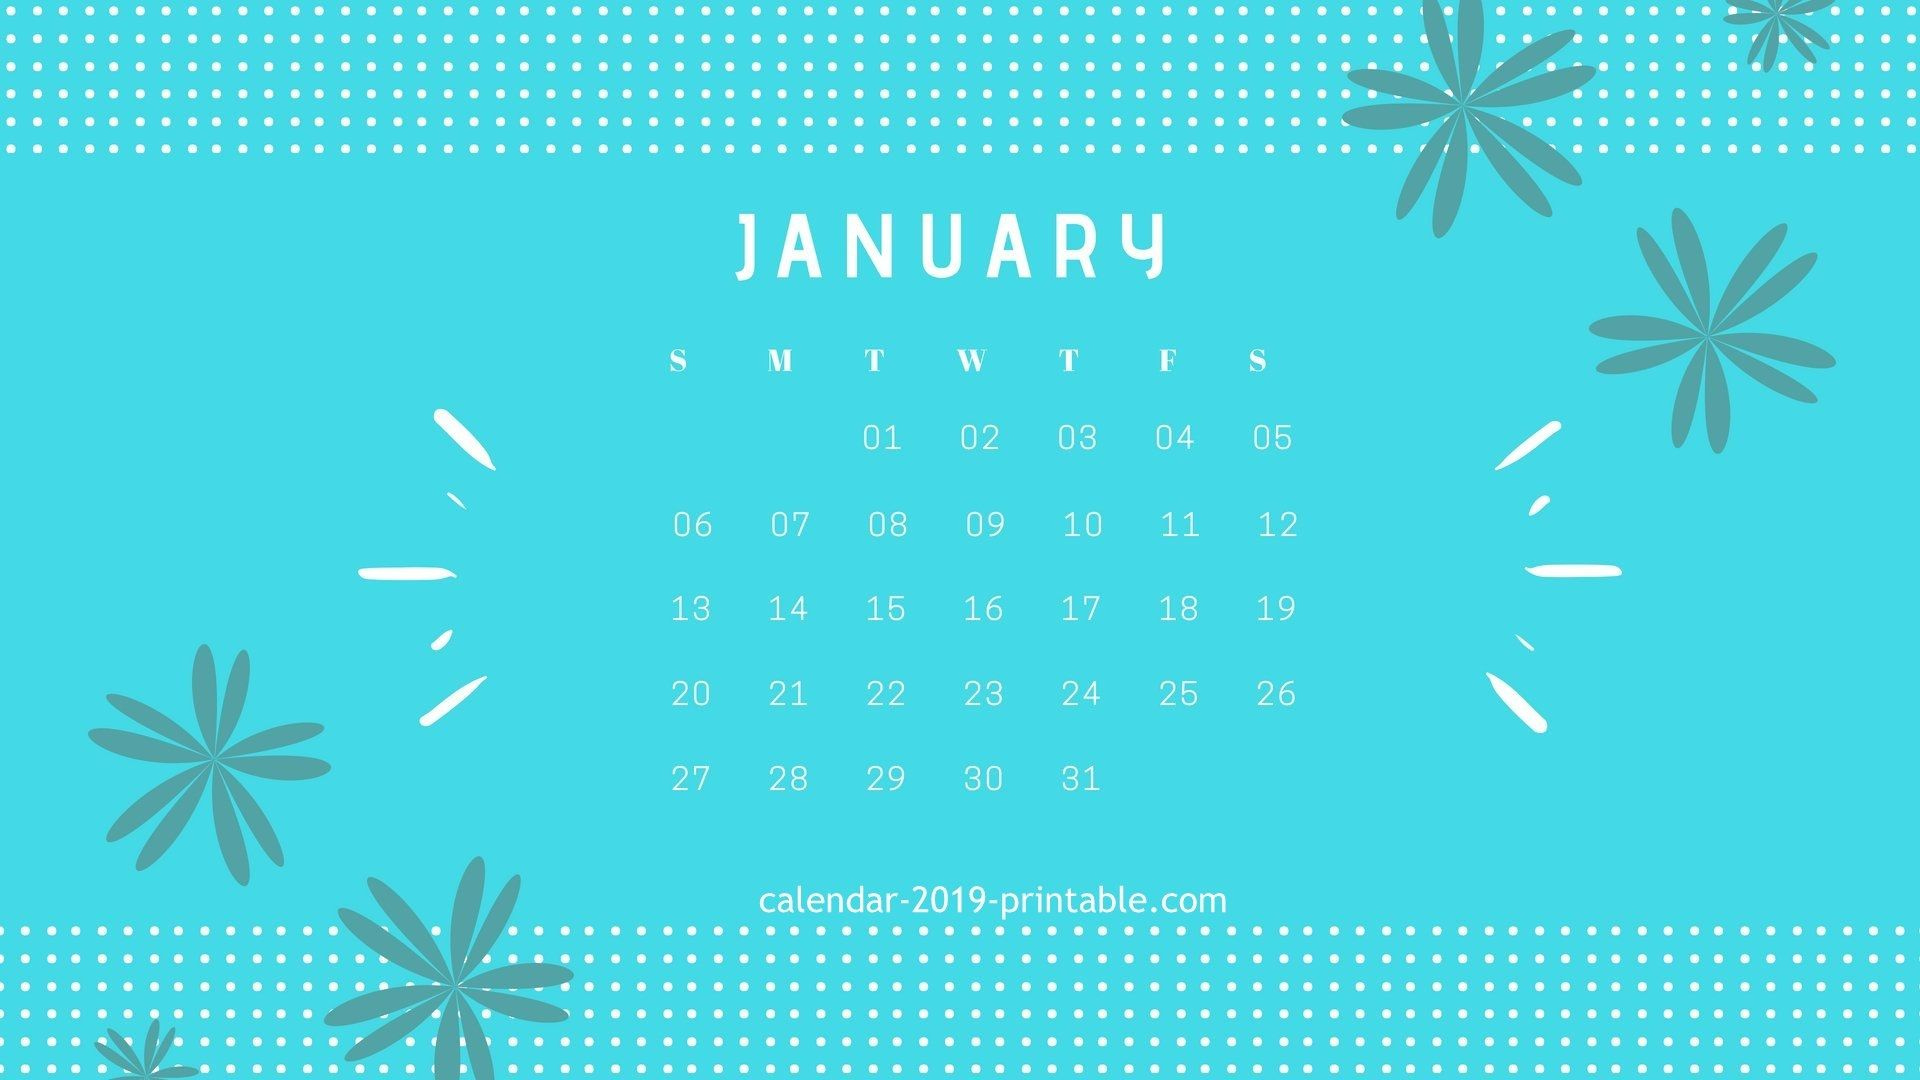 january 2019 calendar desktop wallpapers calendar 2019 printablejanuary 2019 desktop calendar